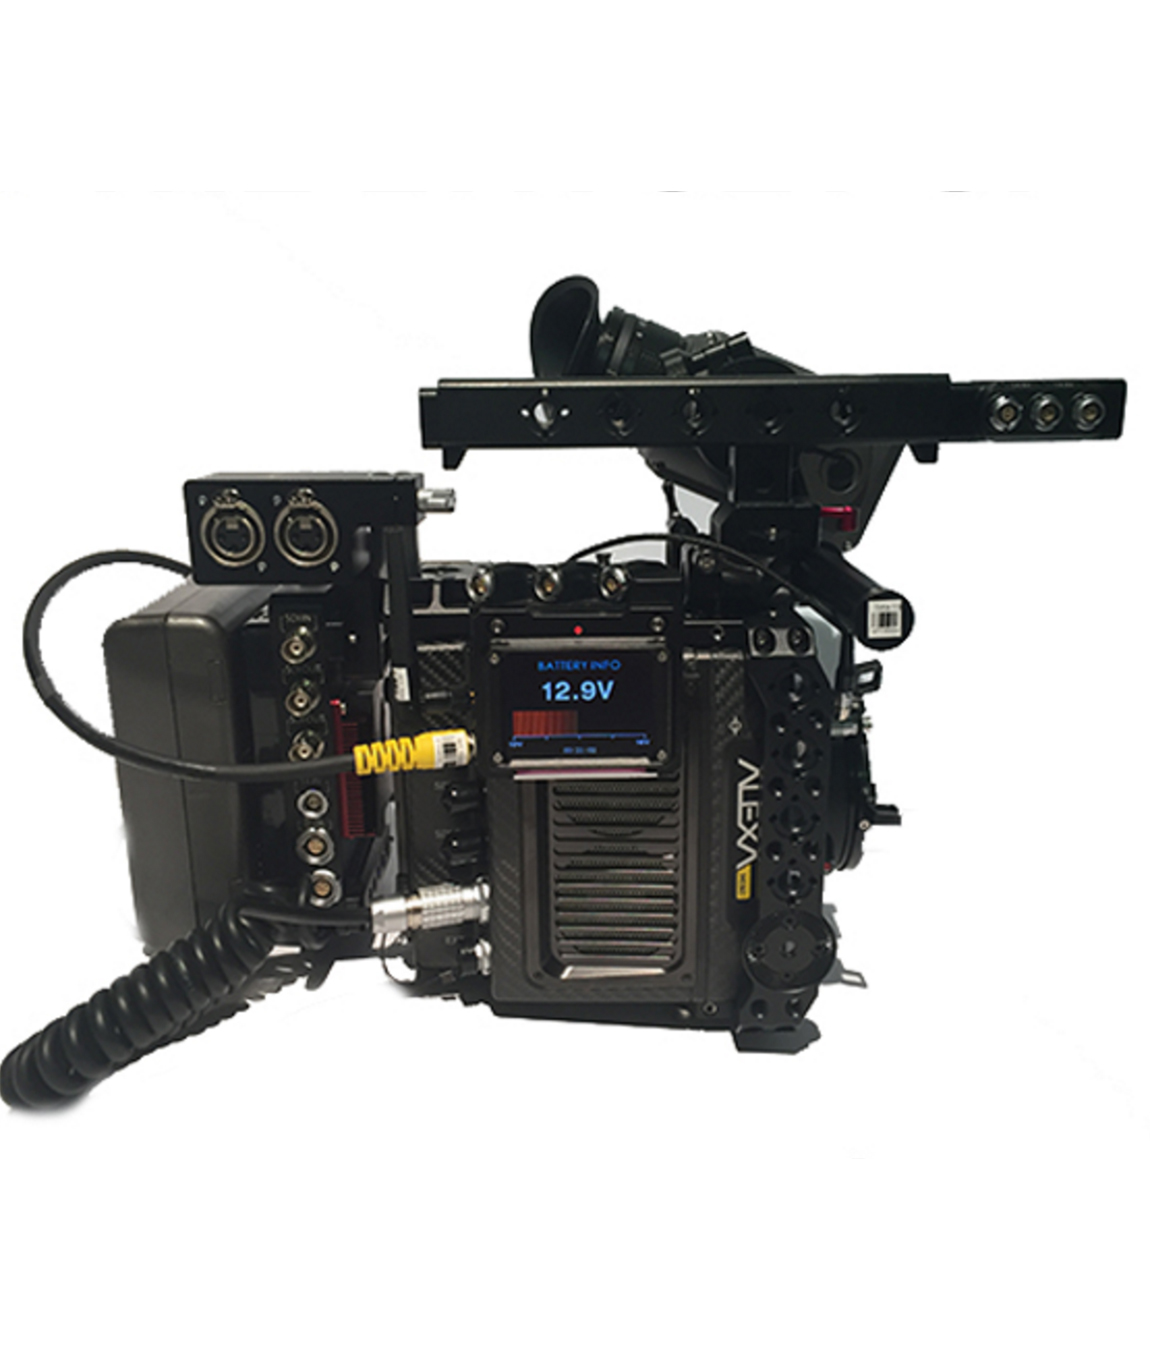 Rent Arri Alexa Mini PL Camera with 4:3 and Arriraw License